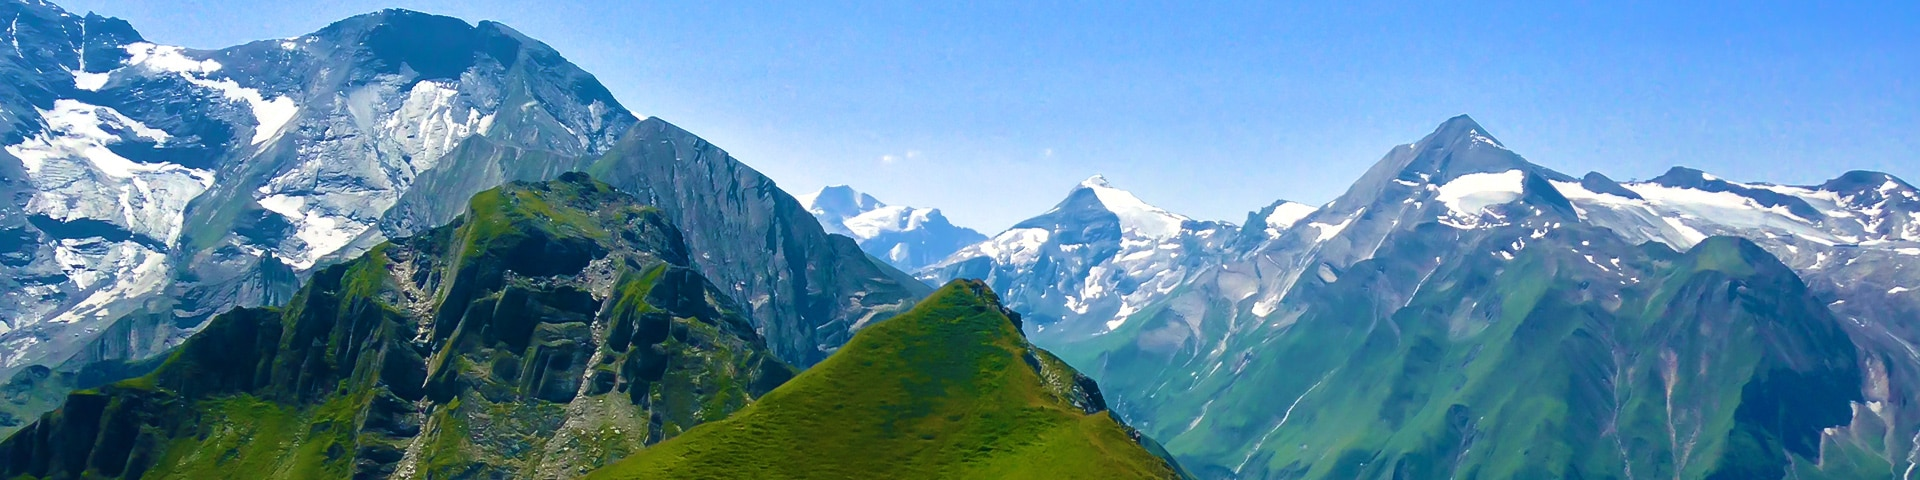 Panorama of the Imbachhorn hike in Zell am See and Kaprun Valley, Austria